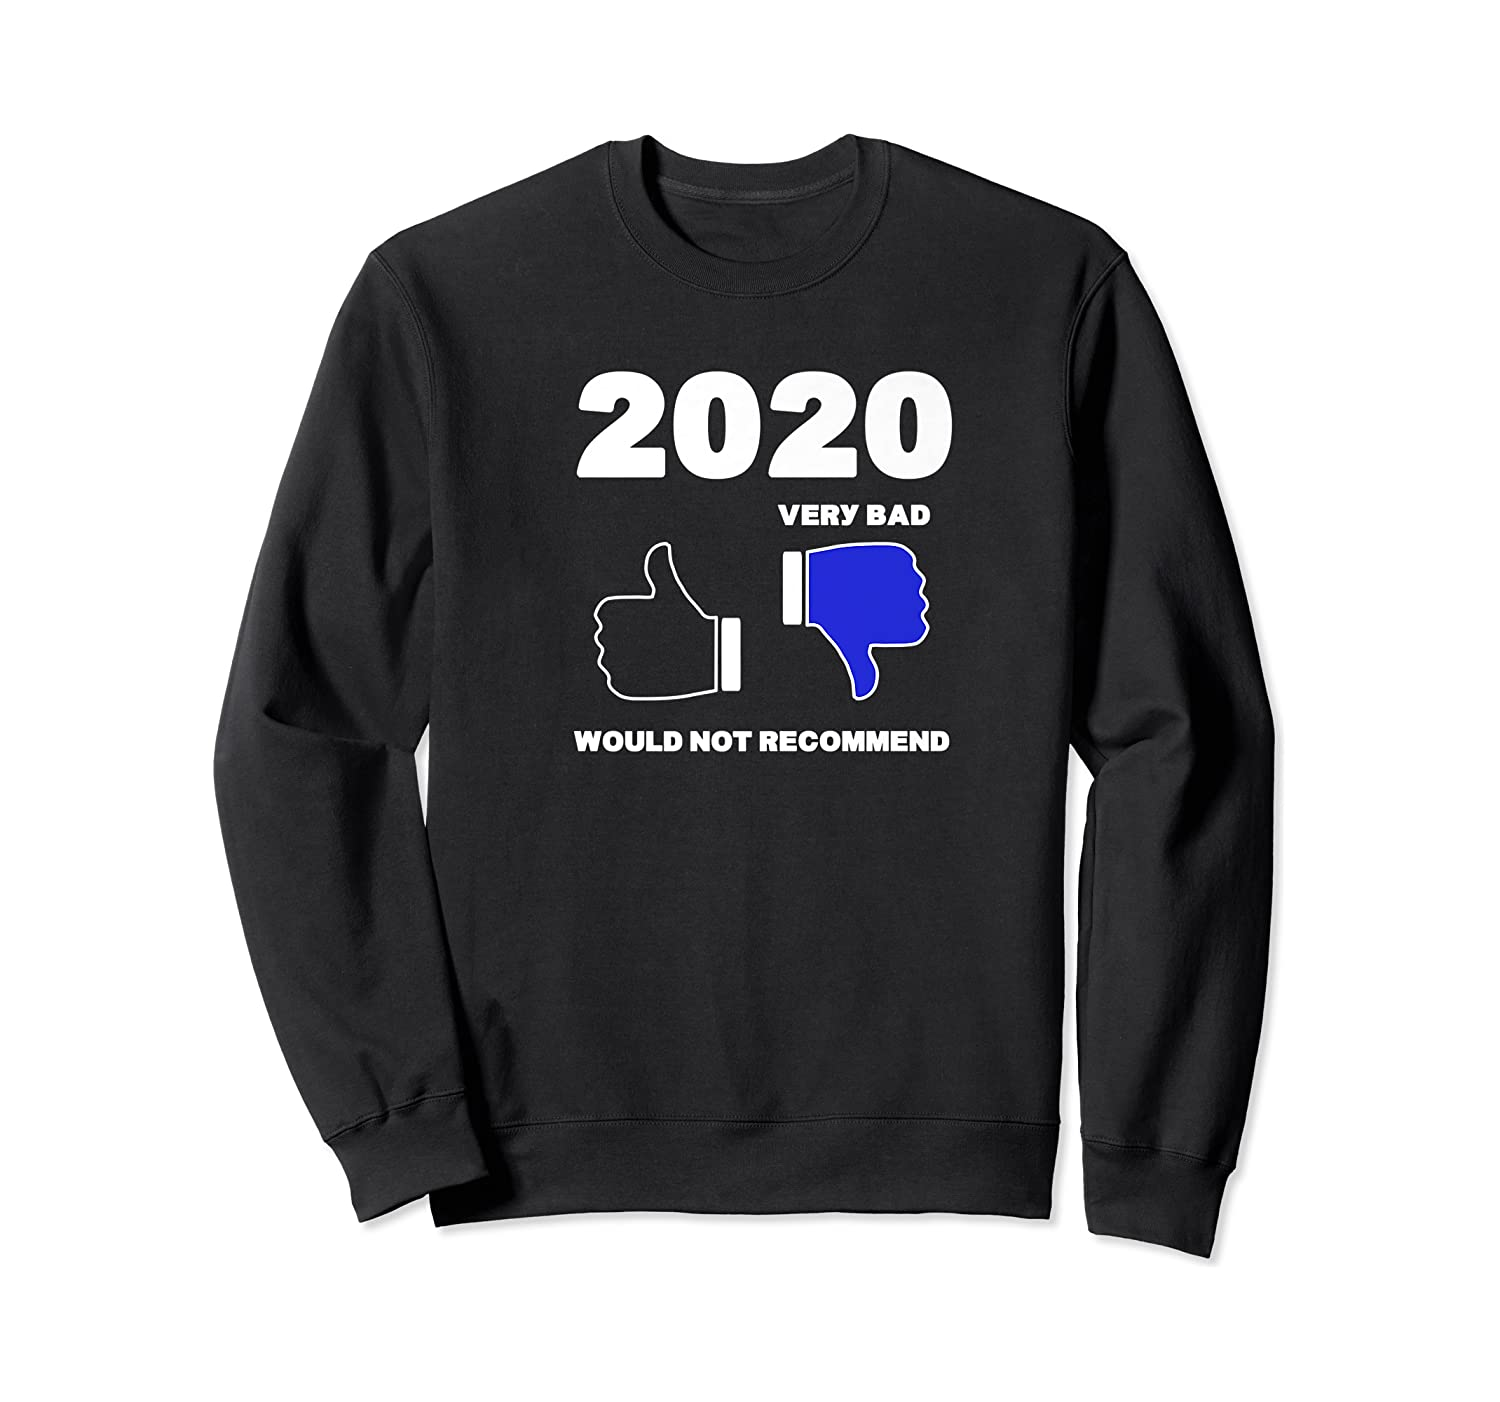 2020 Thumbs Down Rating Very Bad Would Not Recomd Funny Shirts Crewneck Sweater